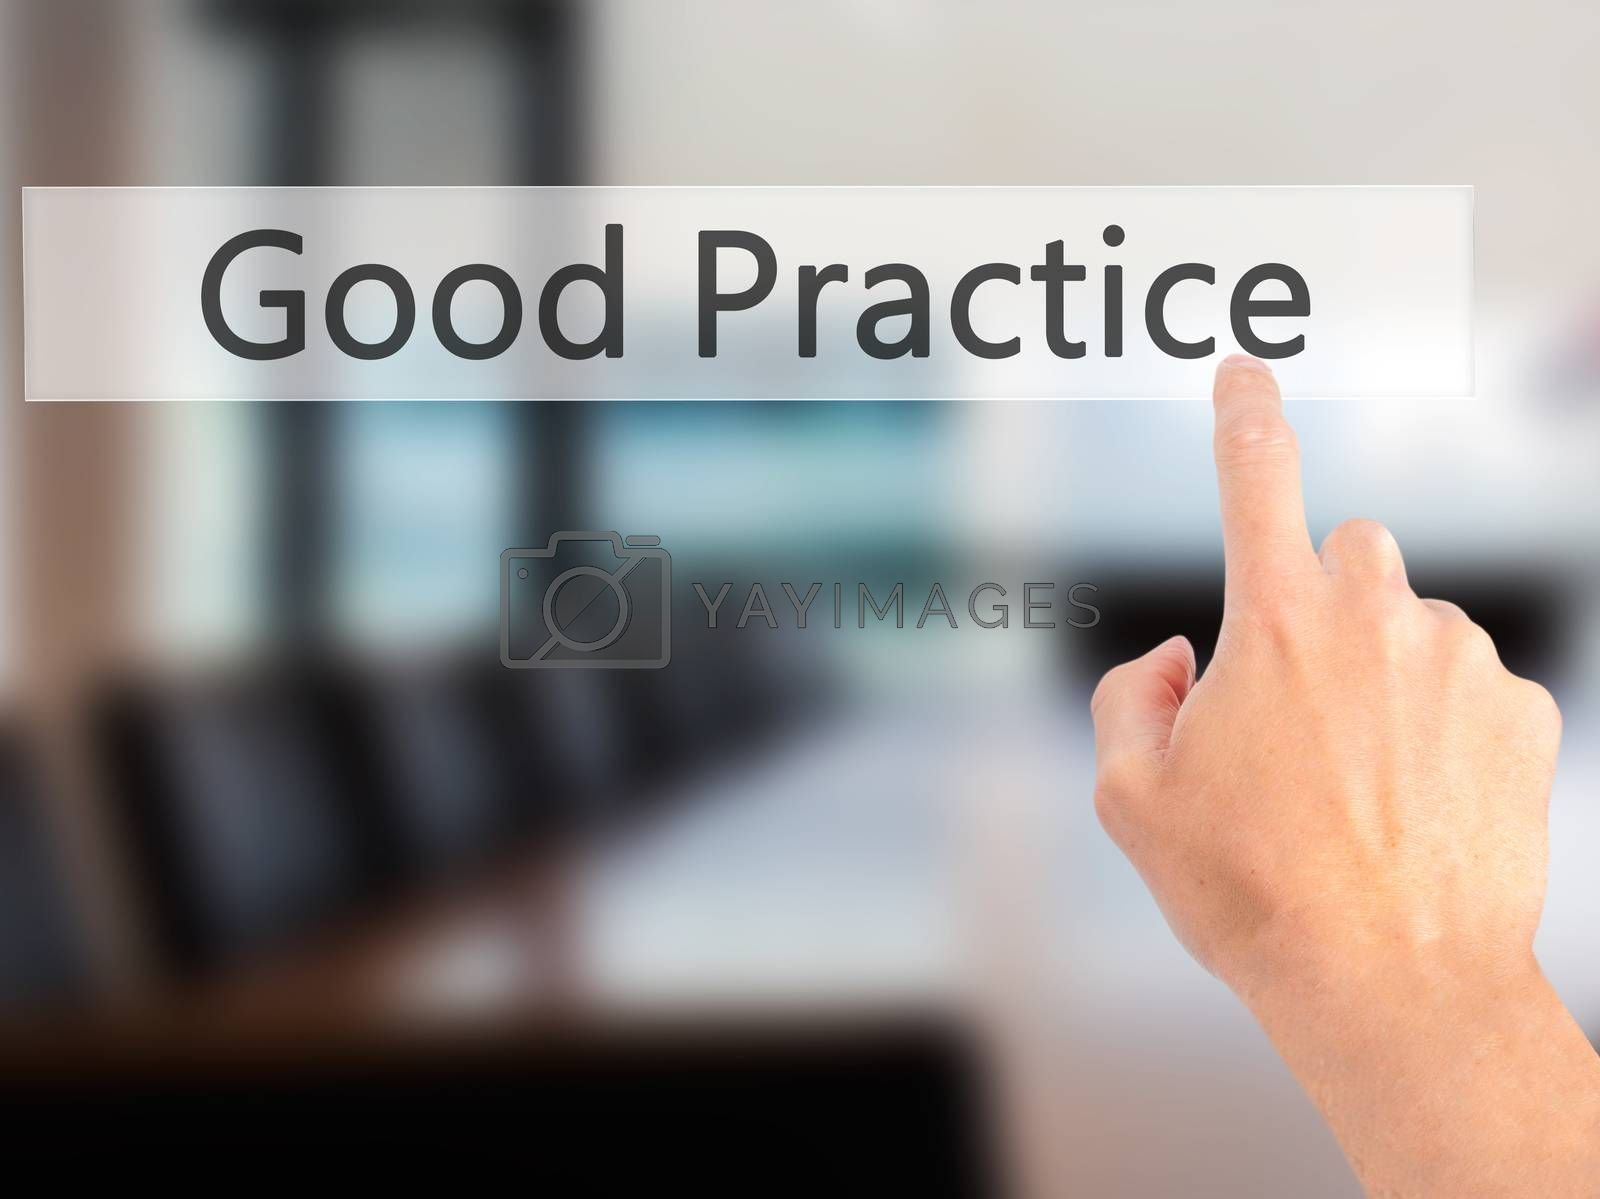 Good Practice - Hand pressing a button on blurred background con by jackald